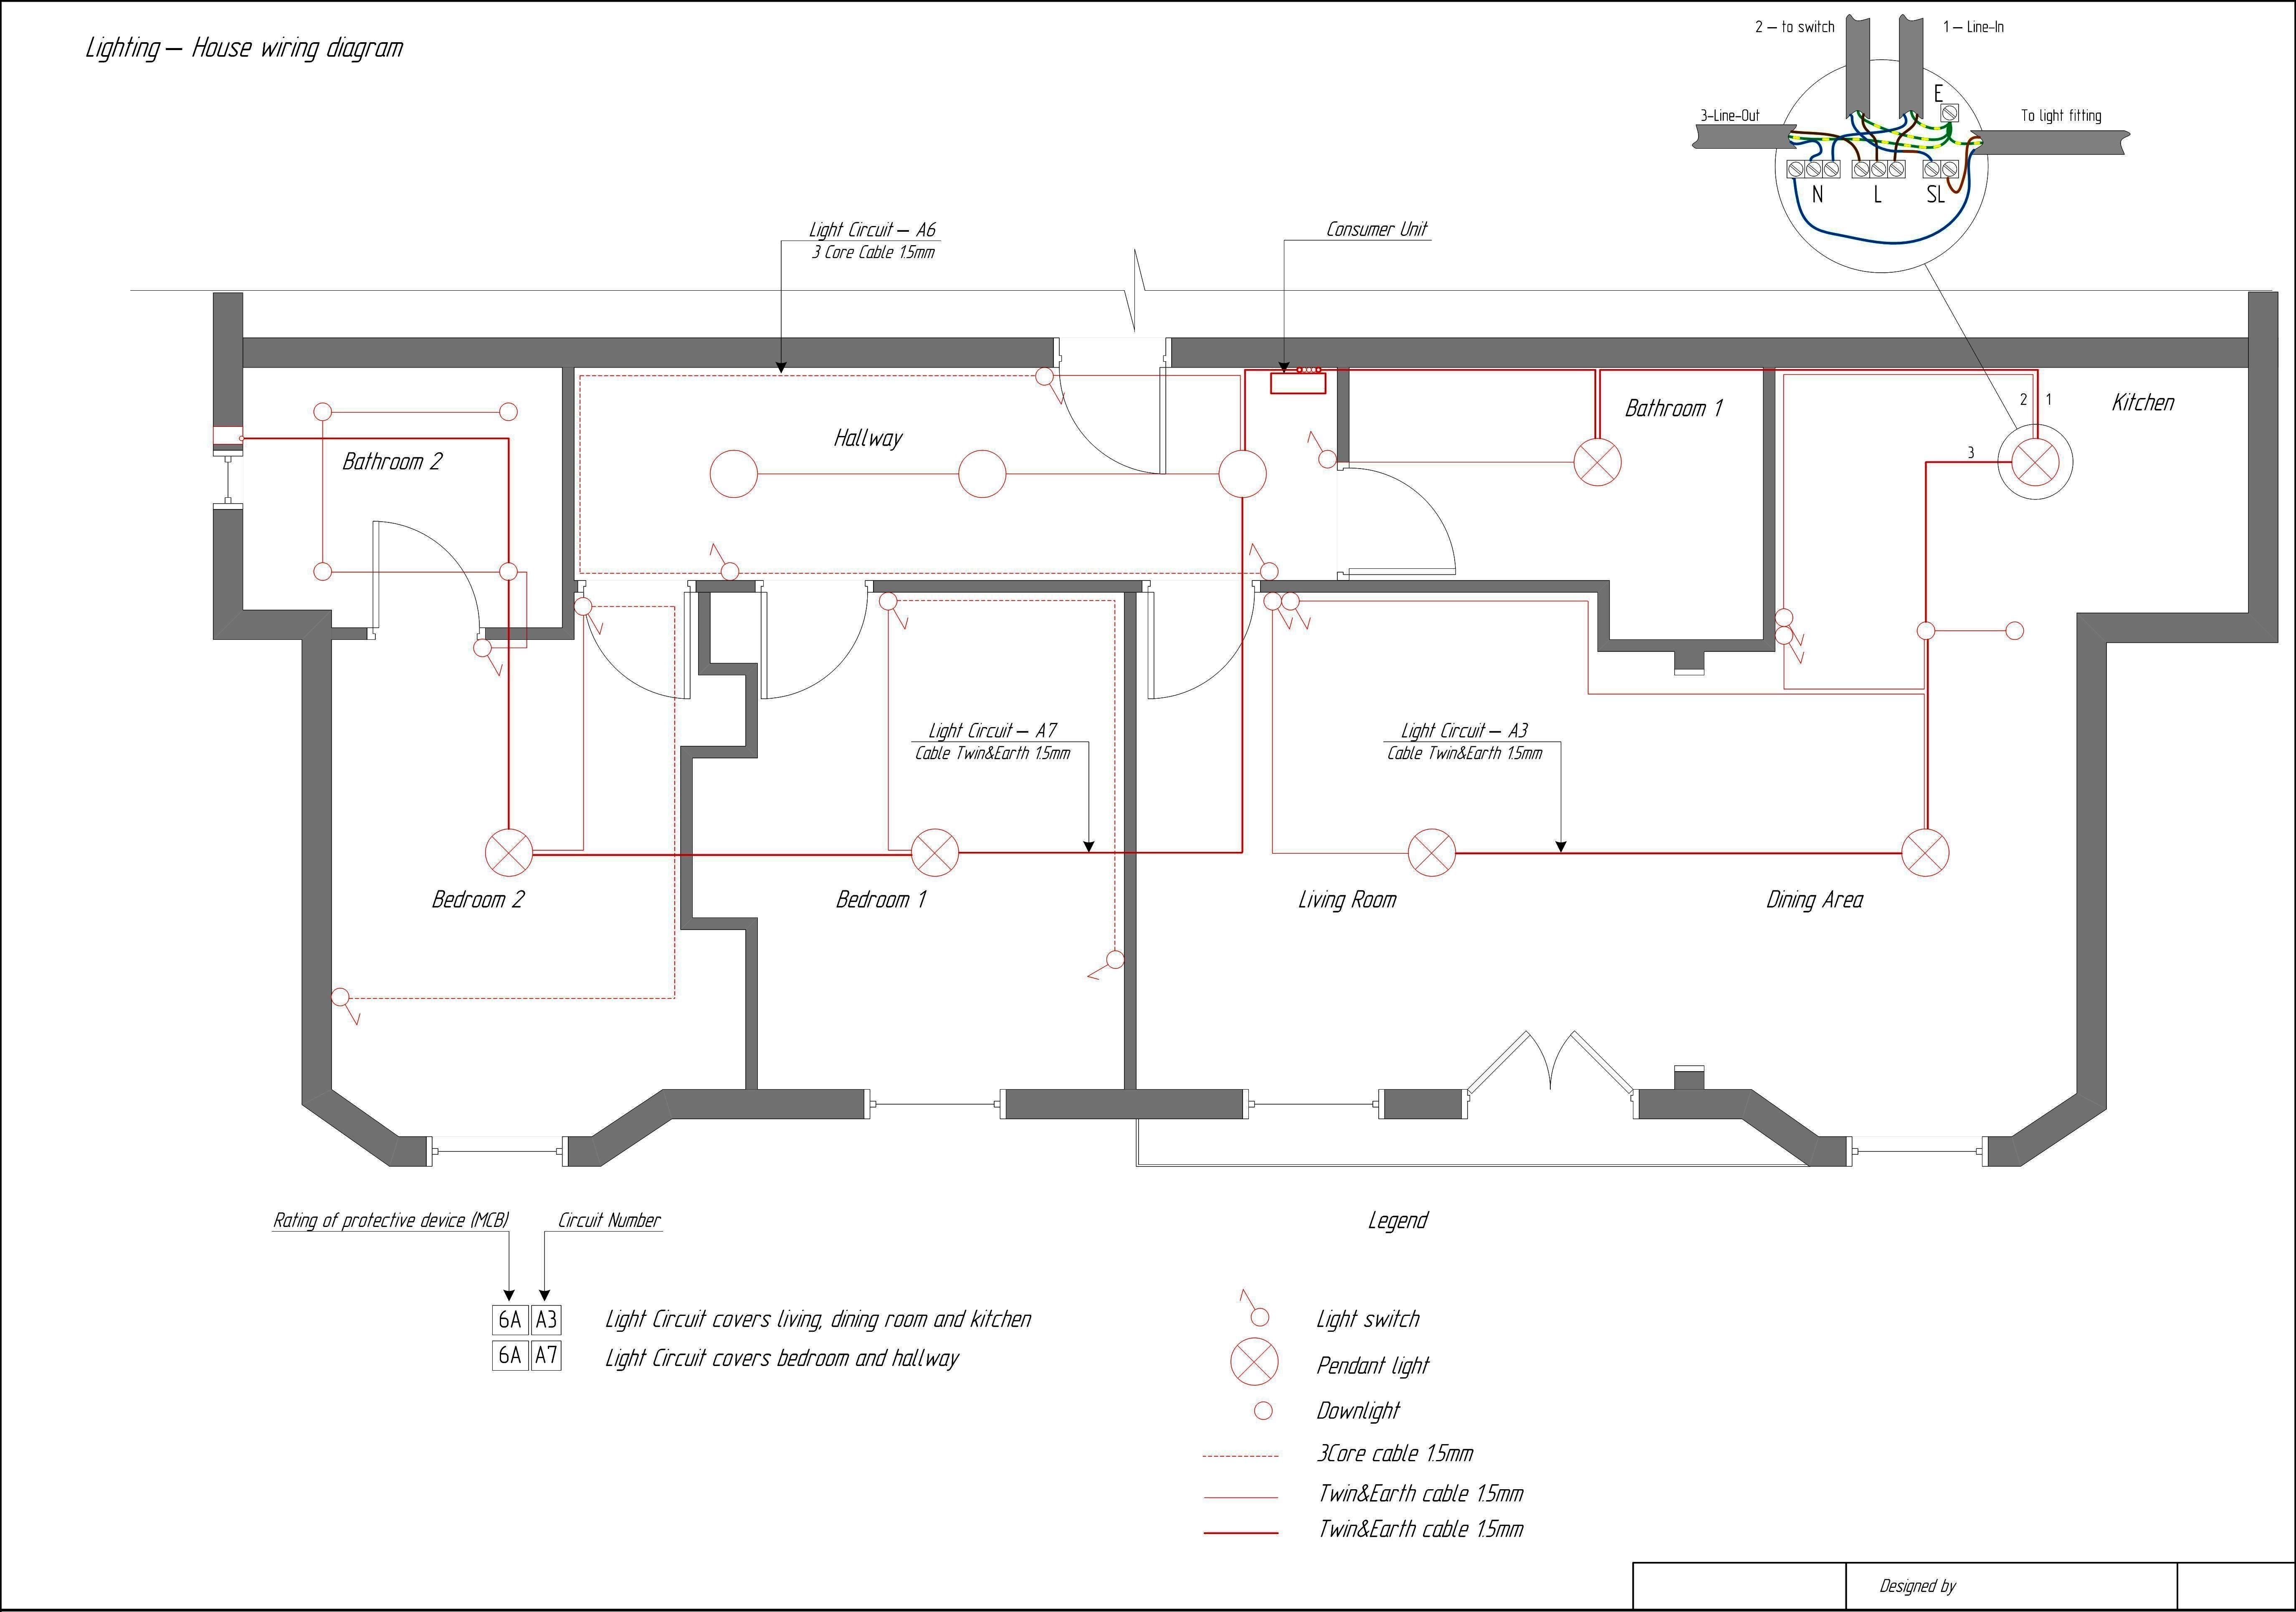 3 Way Switch Wiring For Dummies. Wiring. Wiring Diagram Images